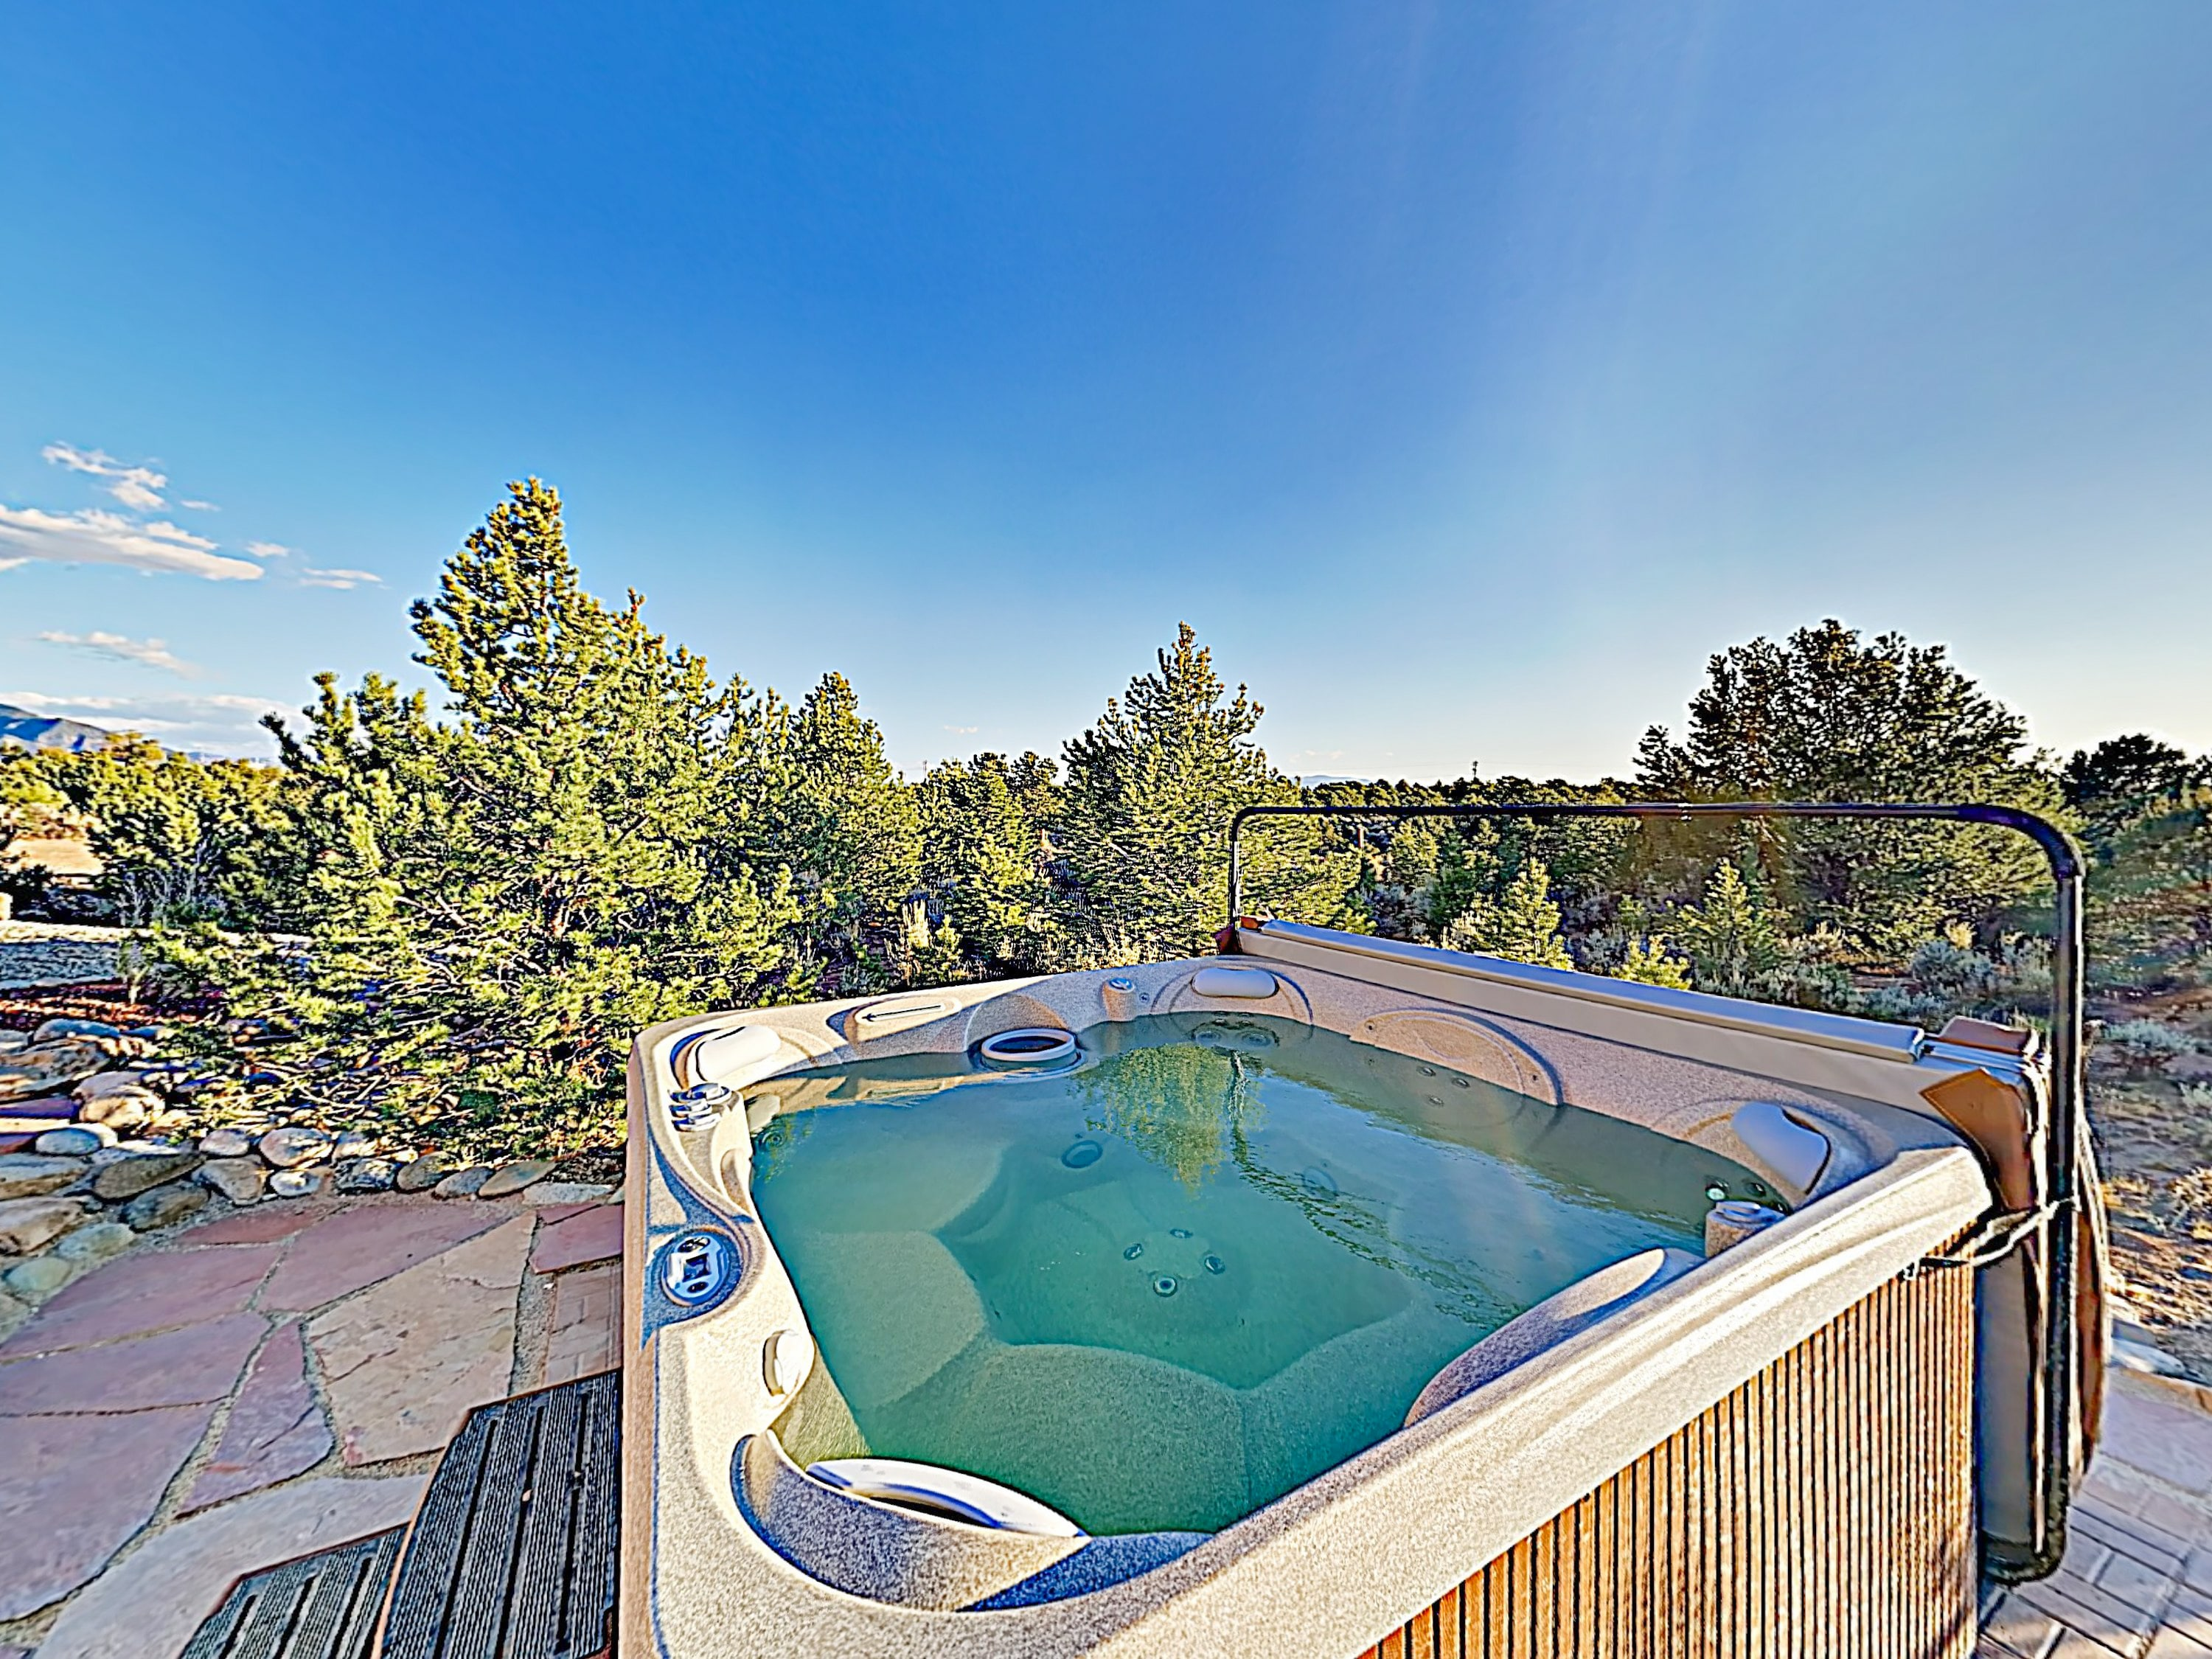 Fire up the private hot tub in your secluded backyard.